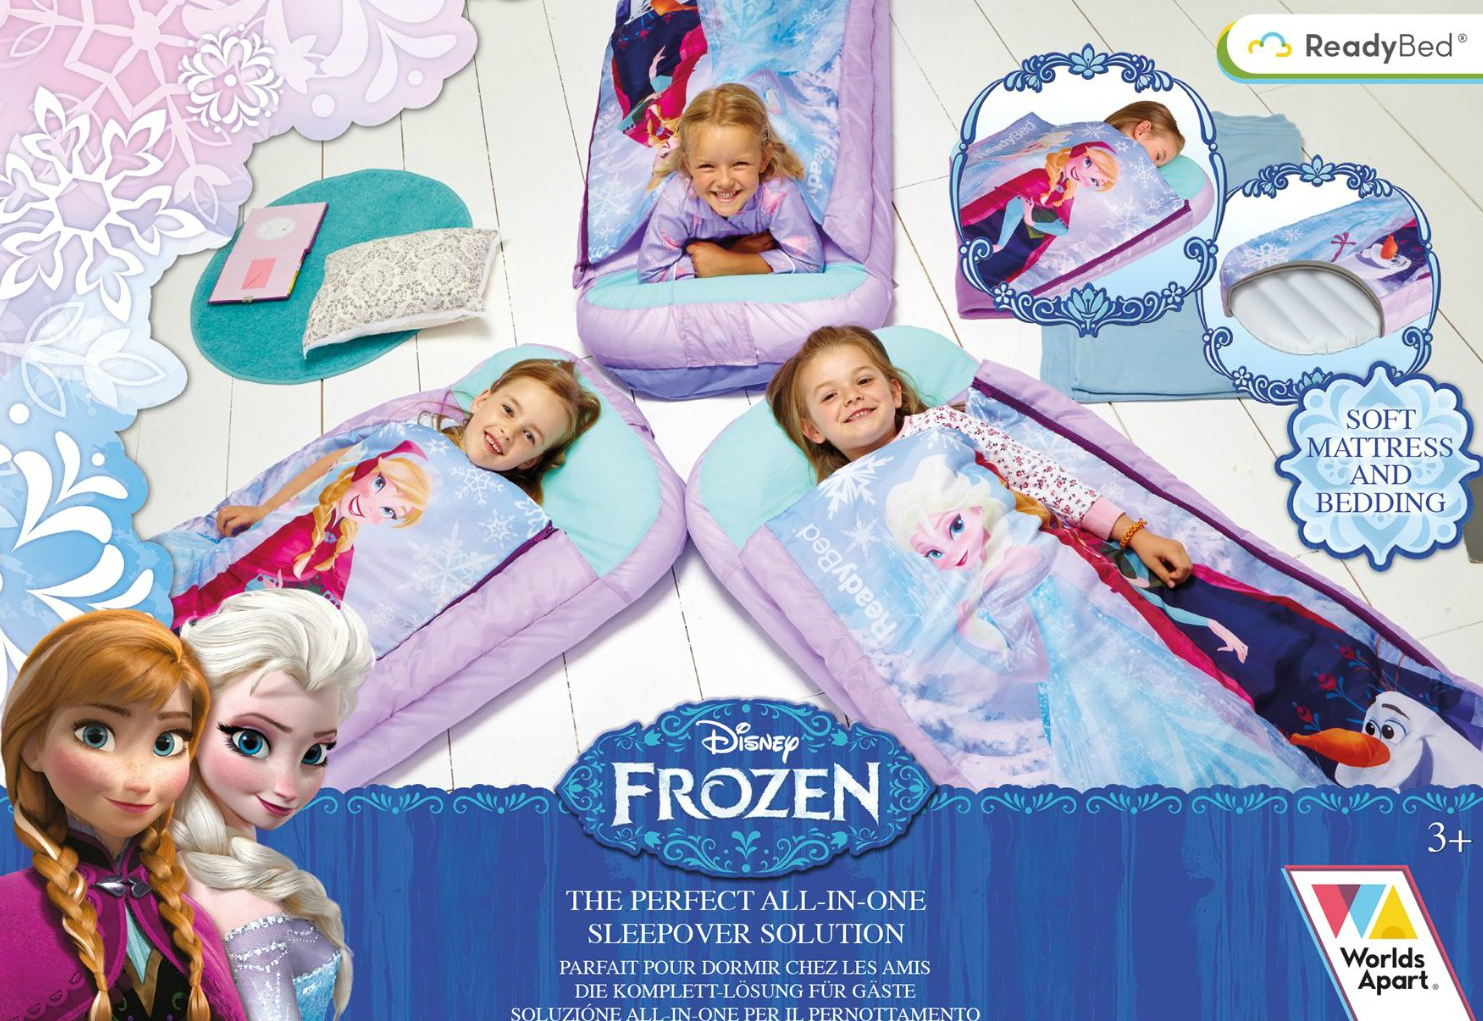 Disney Frozen Bed Junior Ready Sleeping Bag Readybed Kids